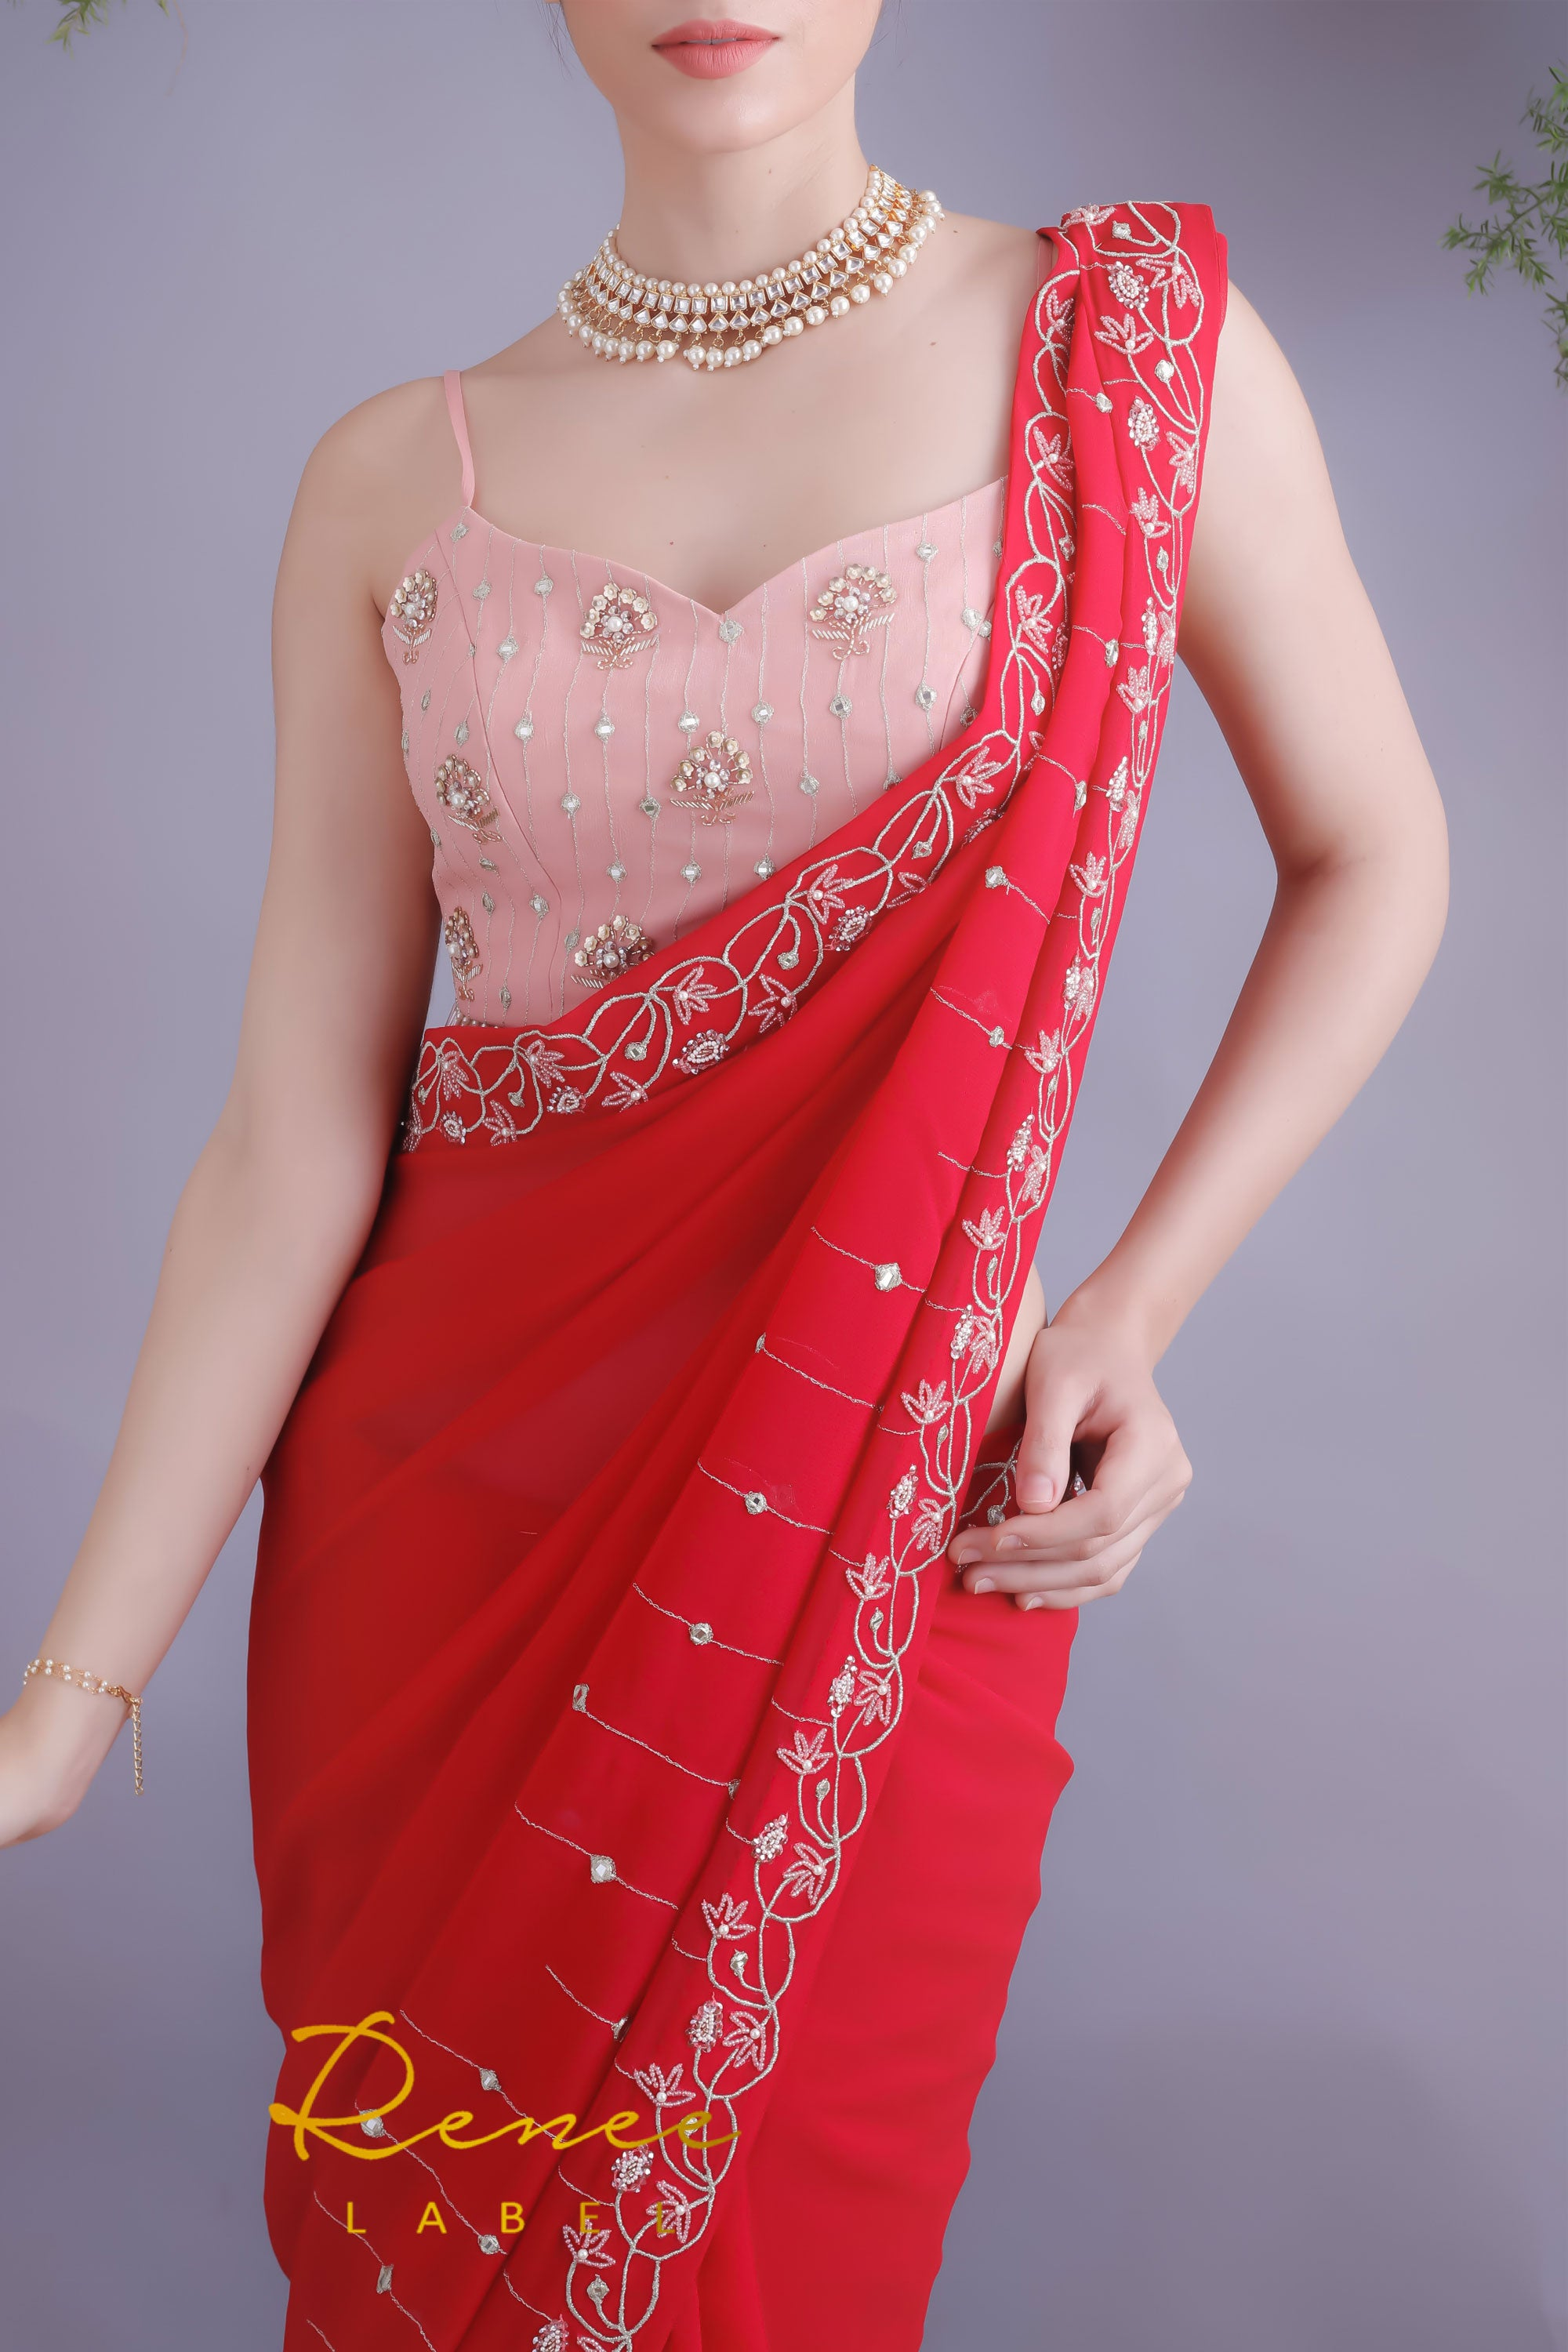 Rose Red Saree & Blush Pink Crop Top Closeup